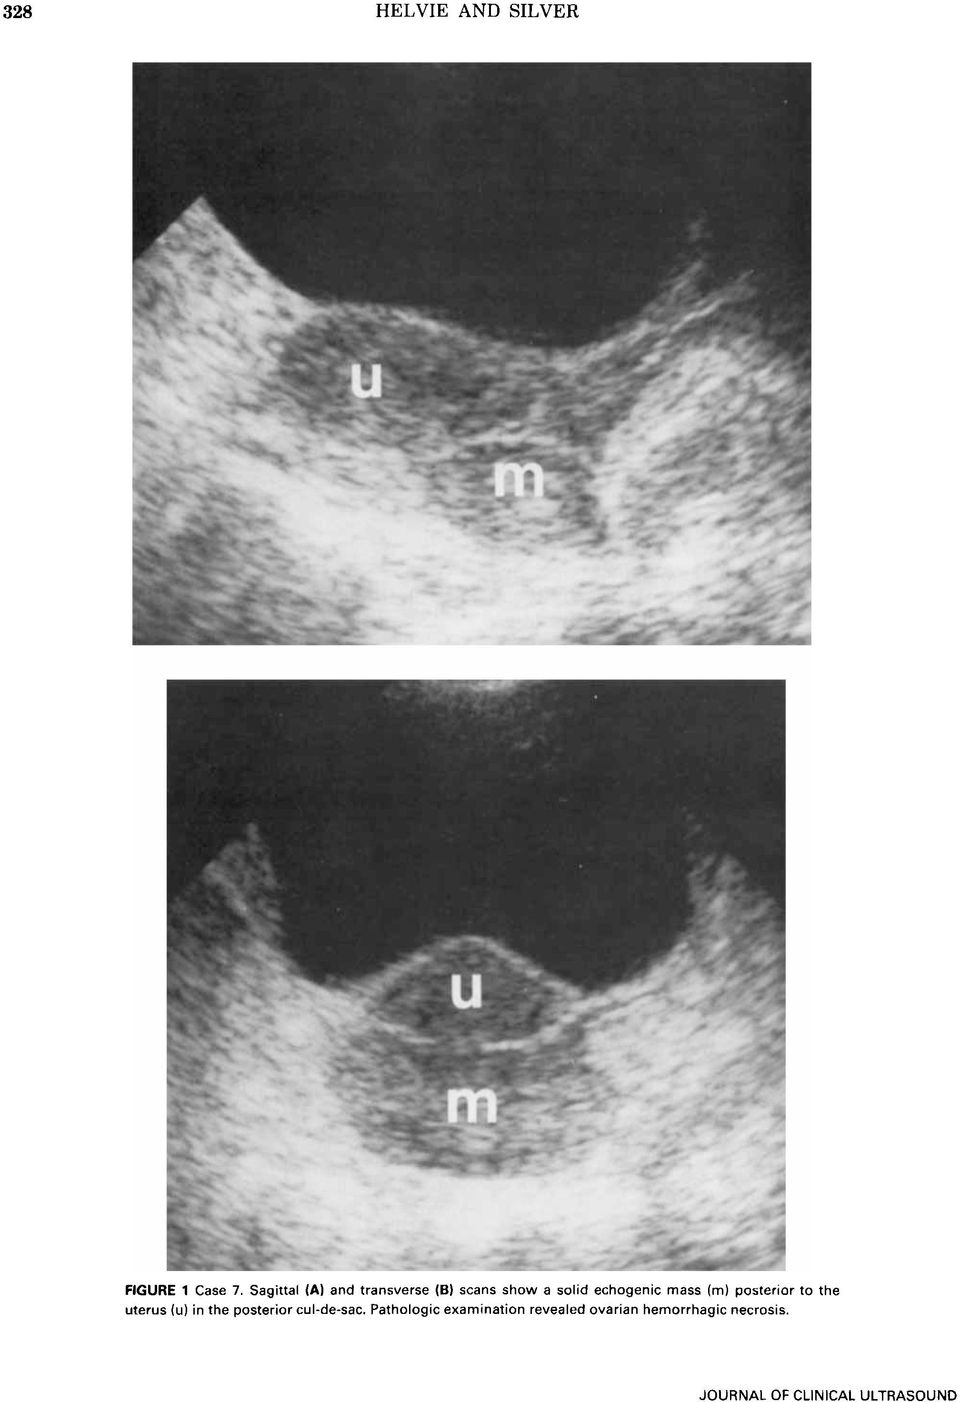 mass (m) posterior to the uterus (u) in the posterior cul-de-sac.